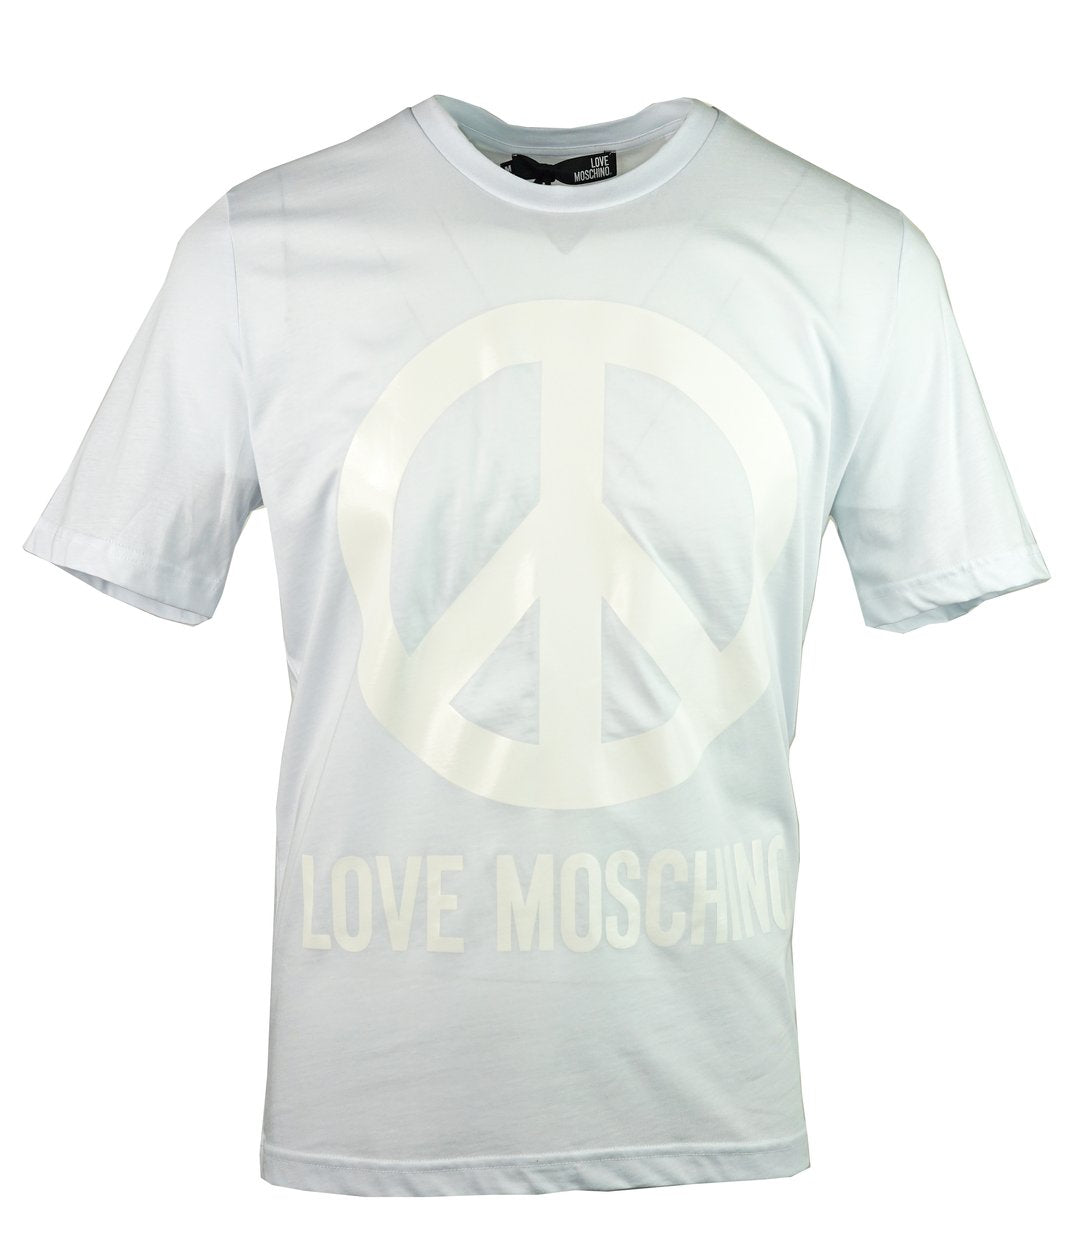 Love Moschino M 4 732 3B M 3876 A00 T-shirt